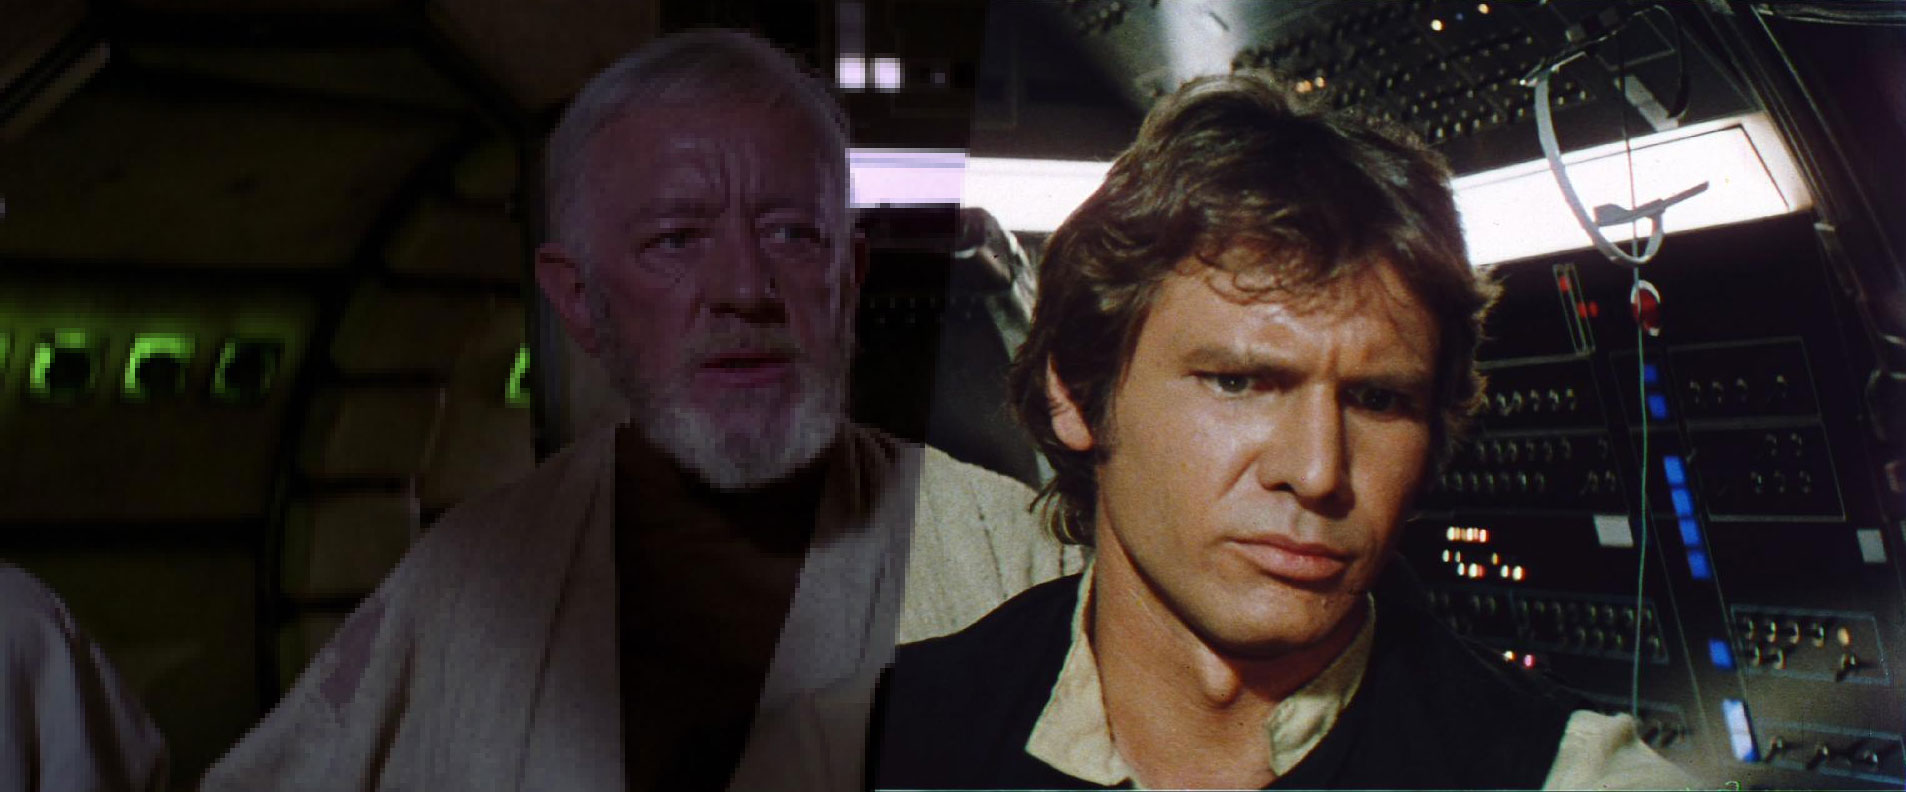 Edited image of two frames from different edits of Star Wars.